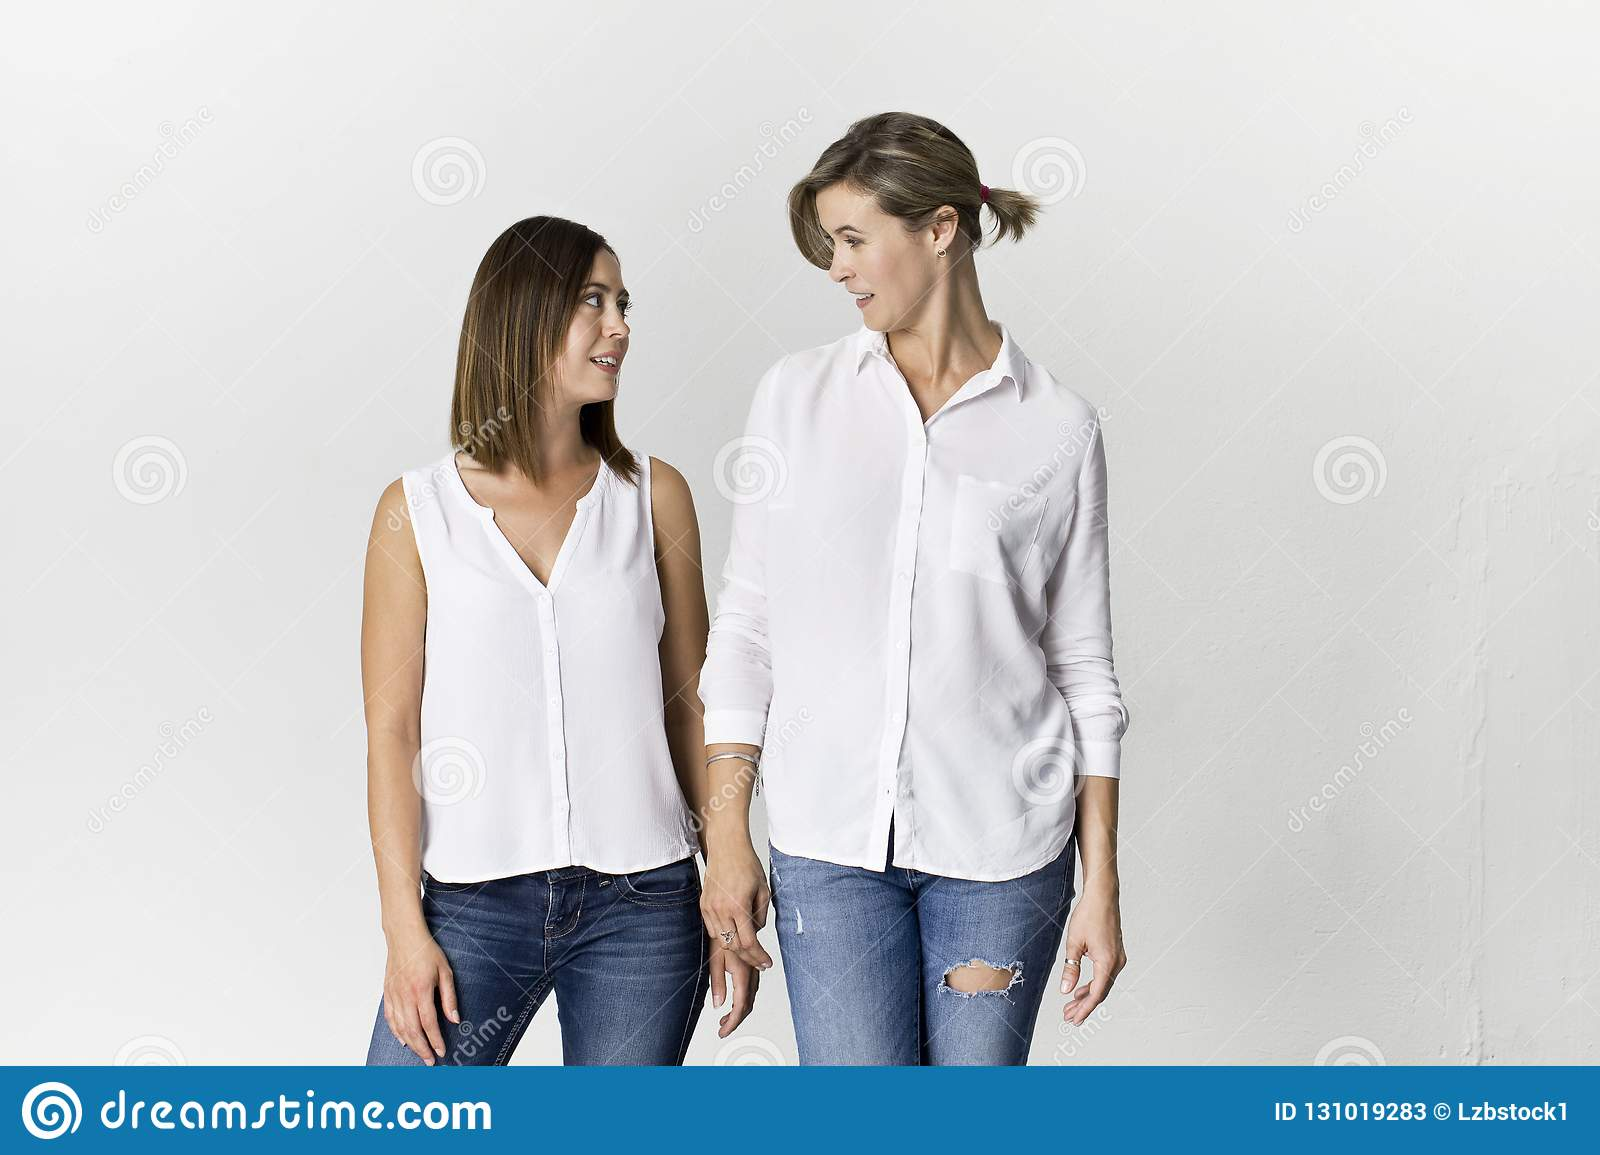 Beautiful attractive funny relaxed carefree girls are greeting in white shirt and jeans on white background